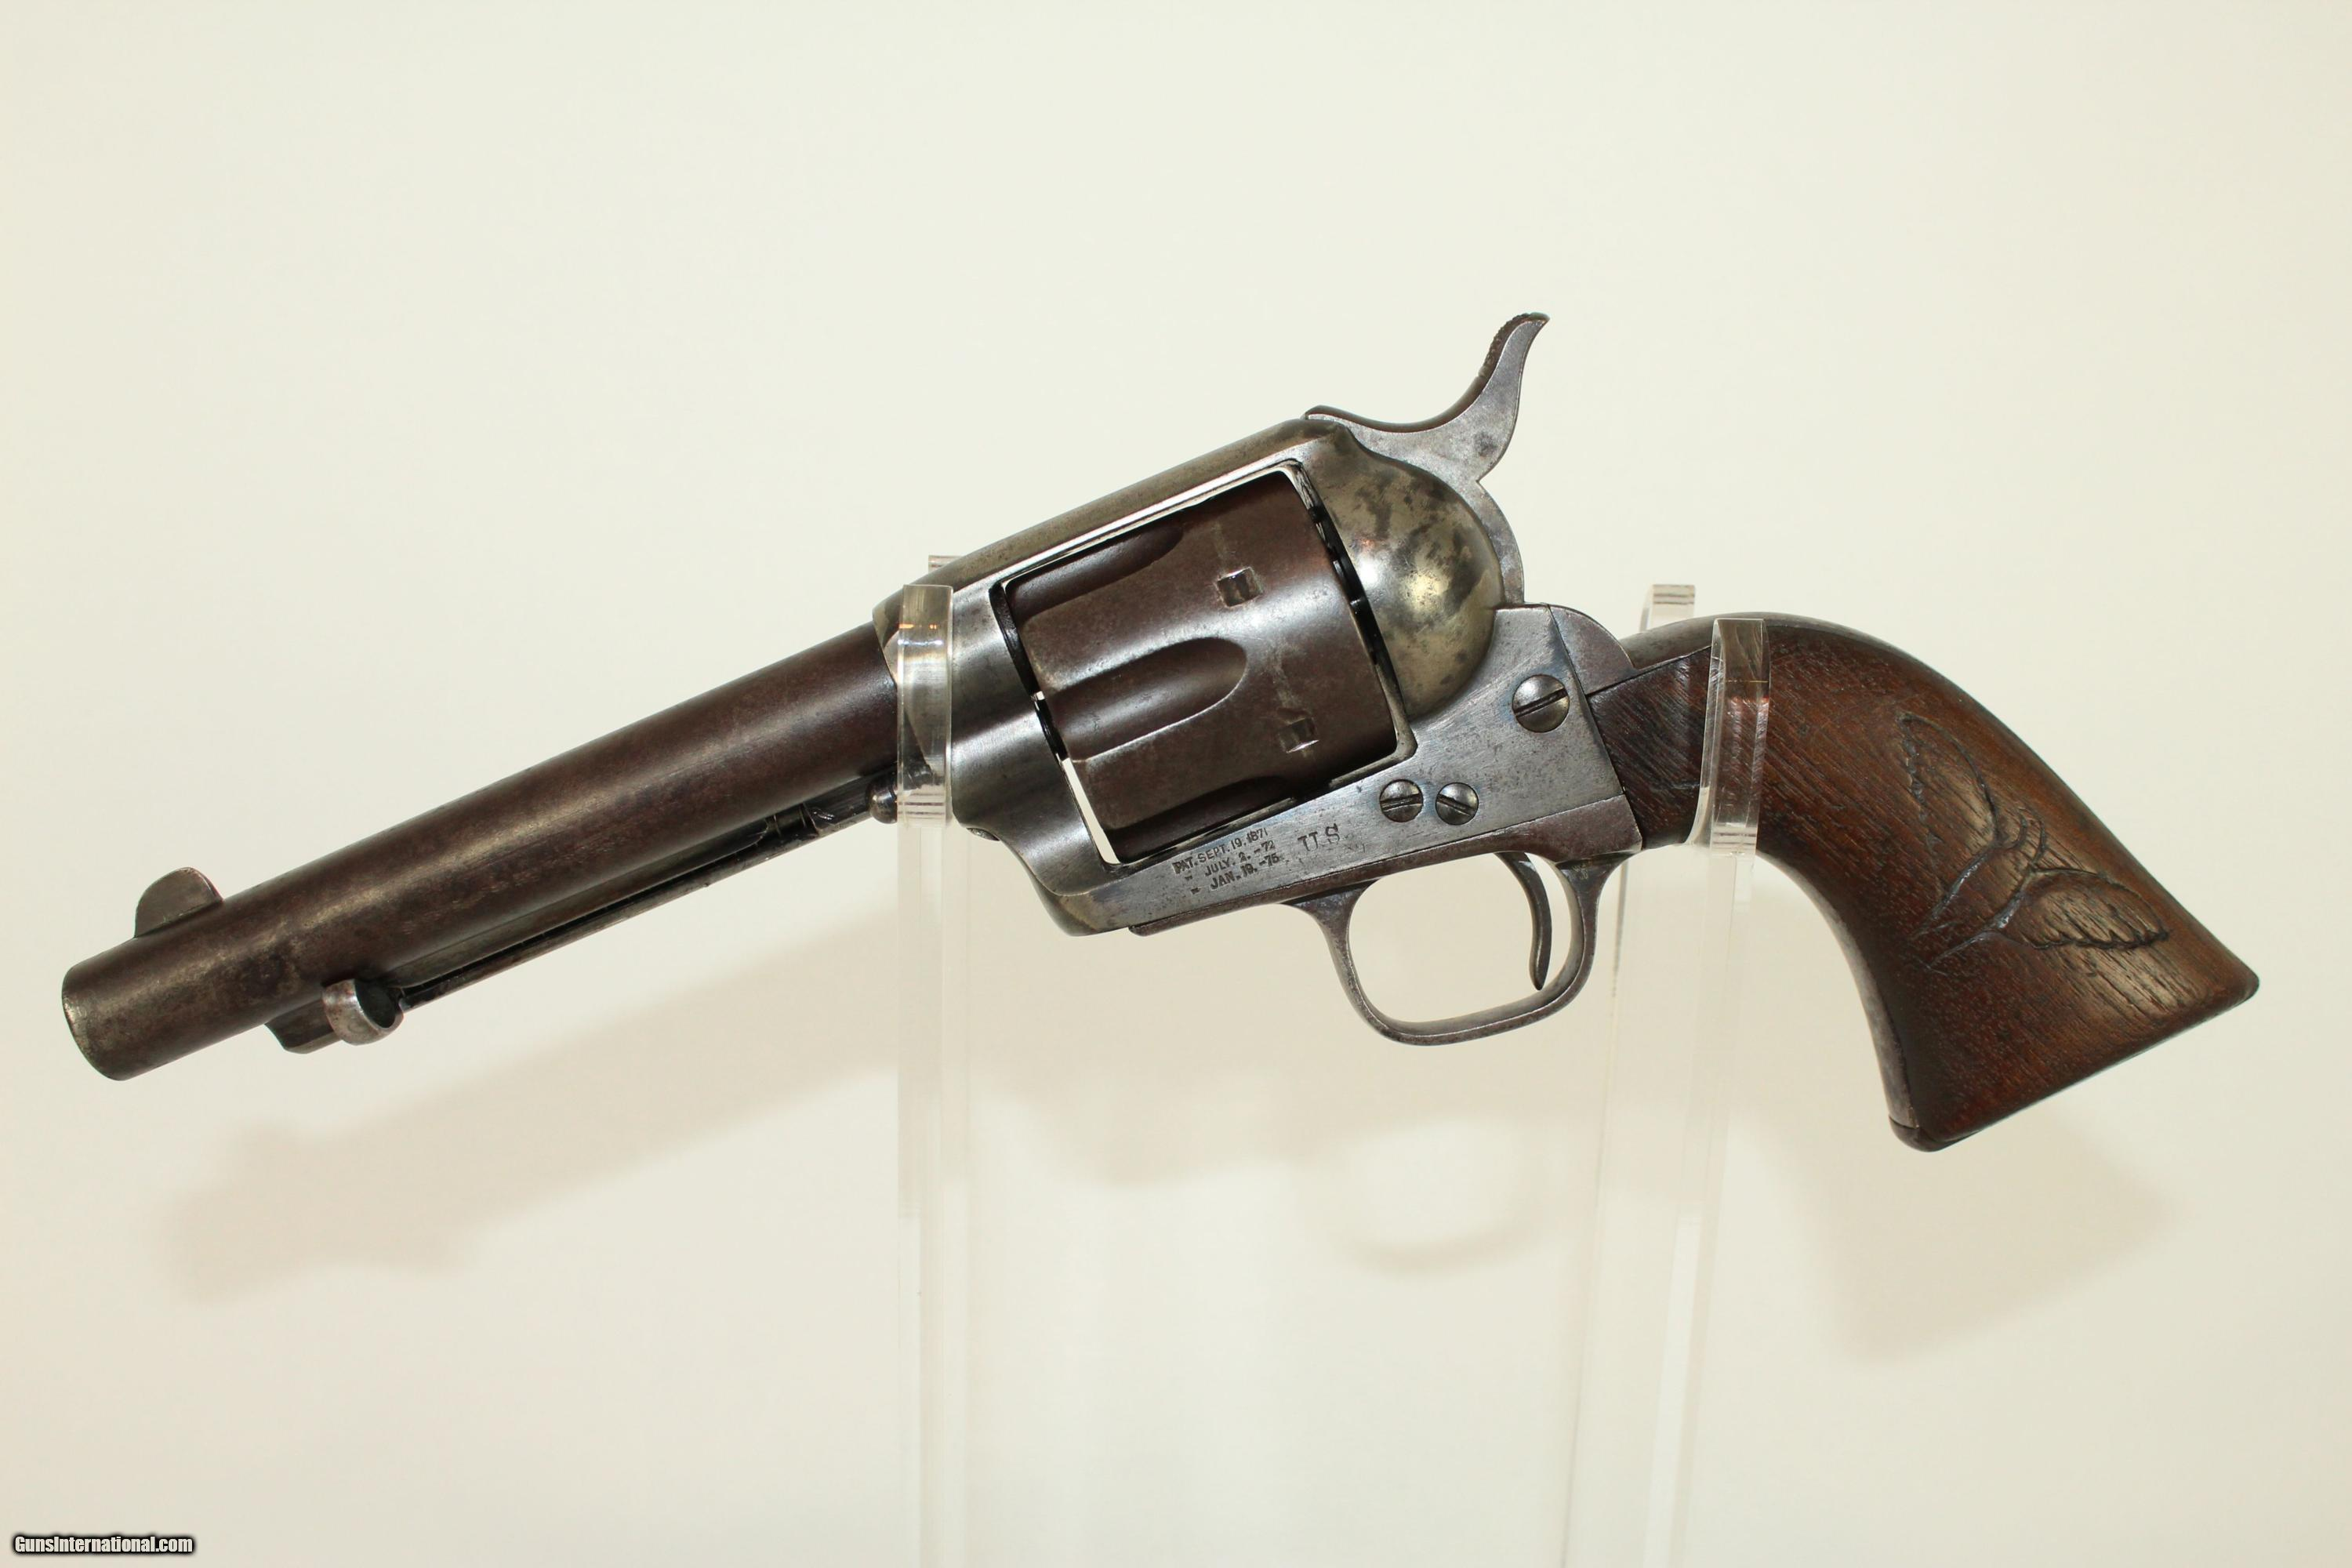 Using a Single-Action Revolver for Self Defense